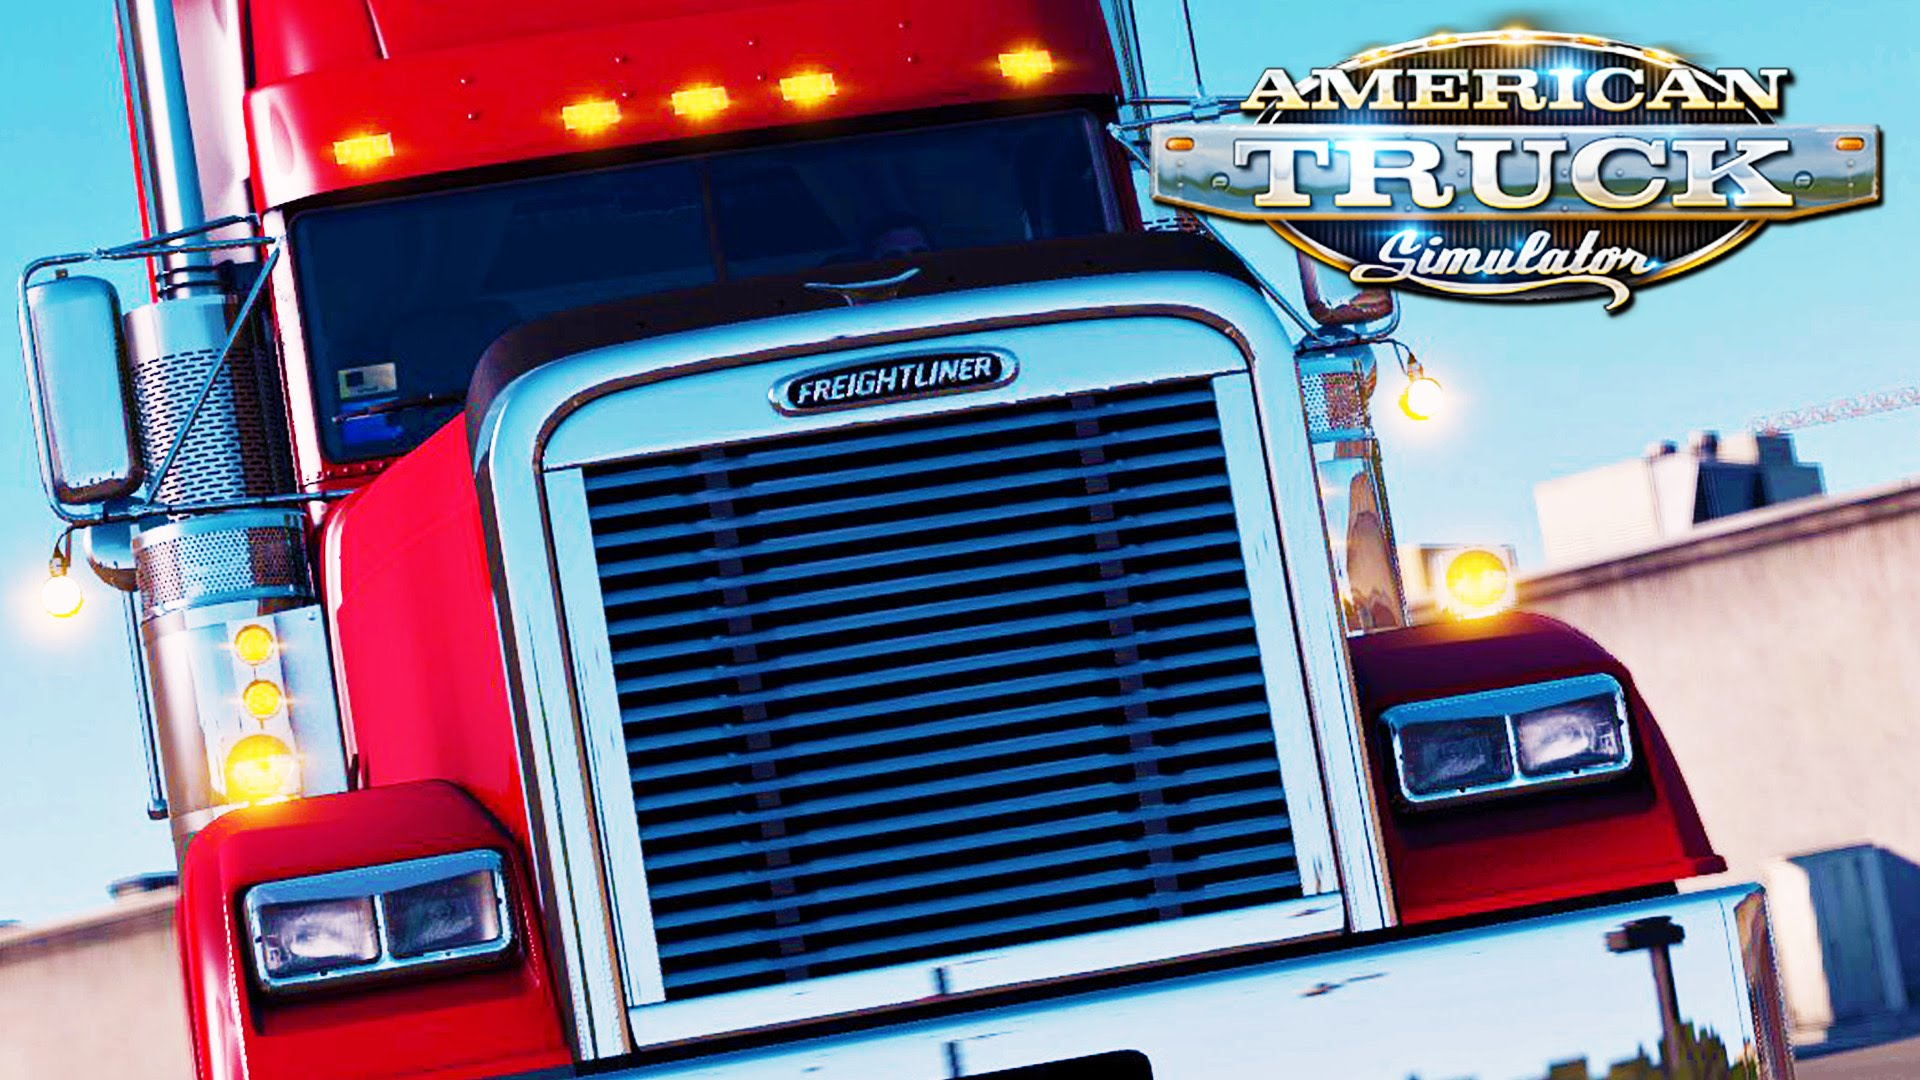 American Truck Simulator - Wallbert Run Video